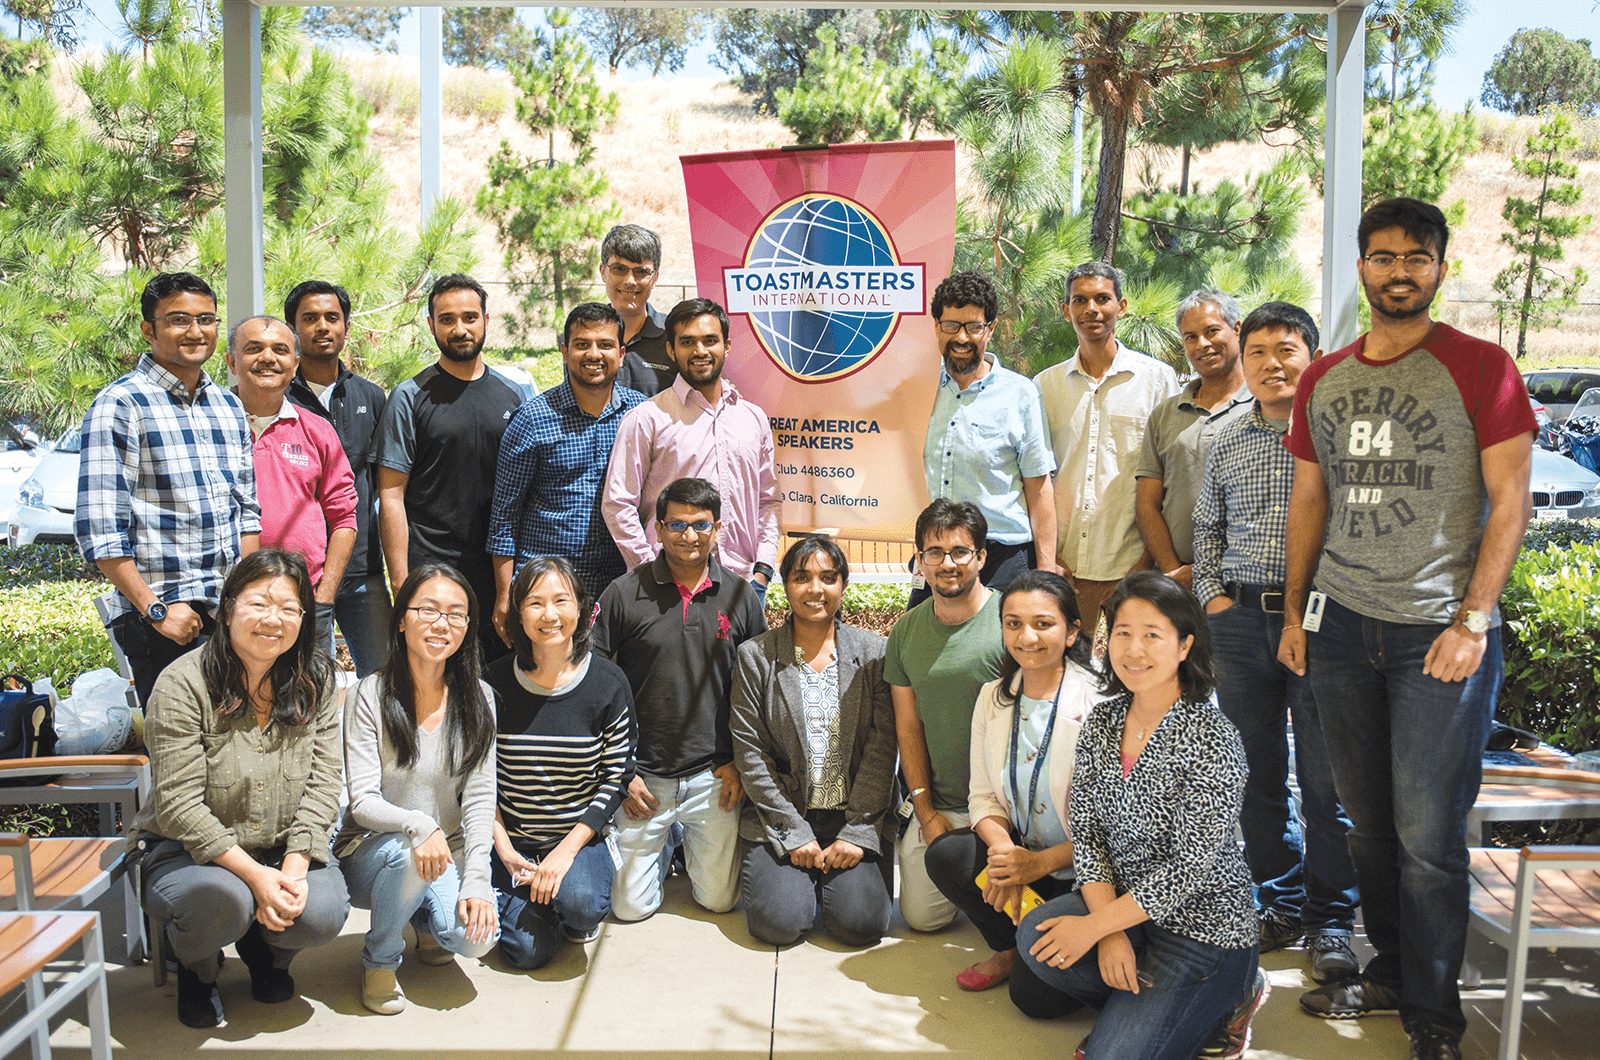 Group of Toastmasters members posing outdoors with banner